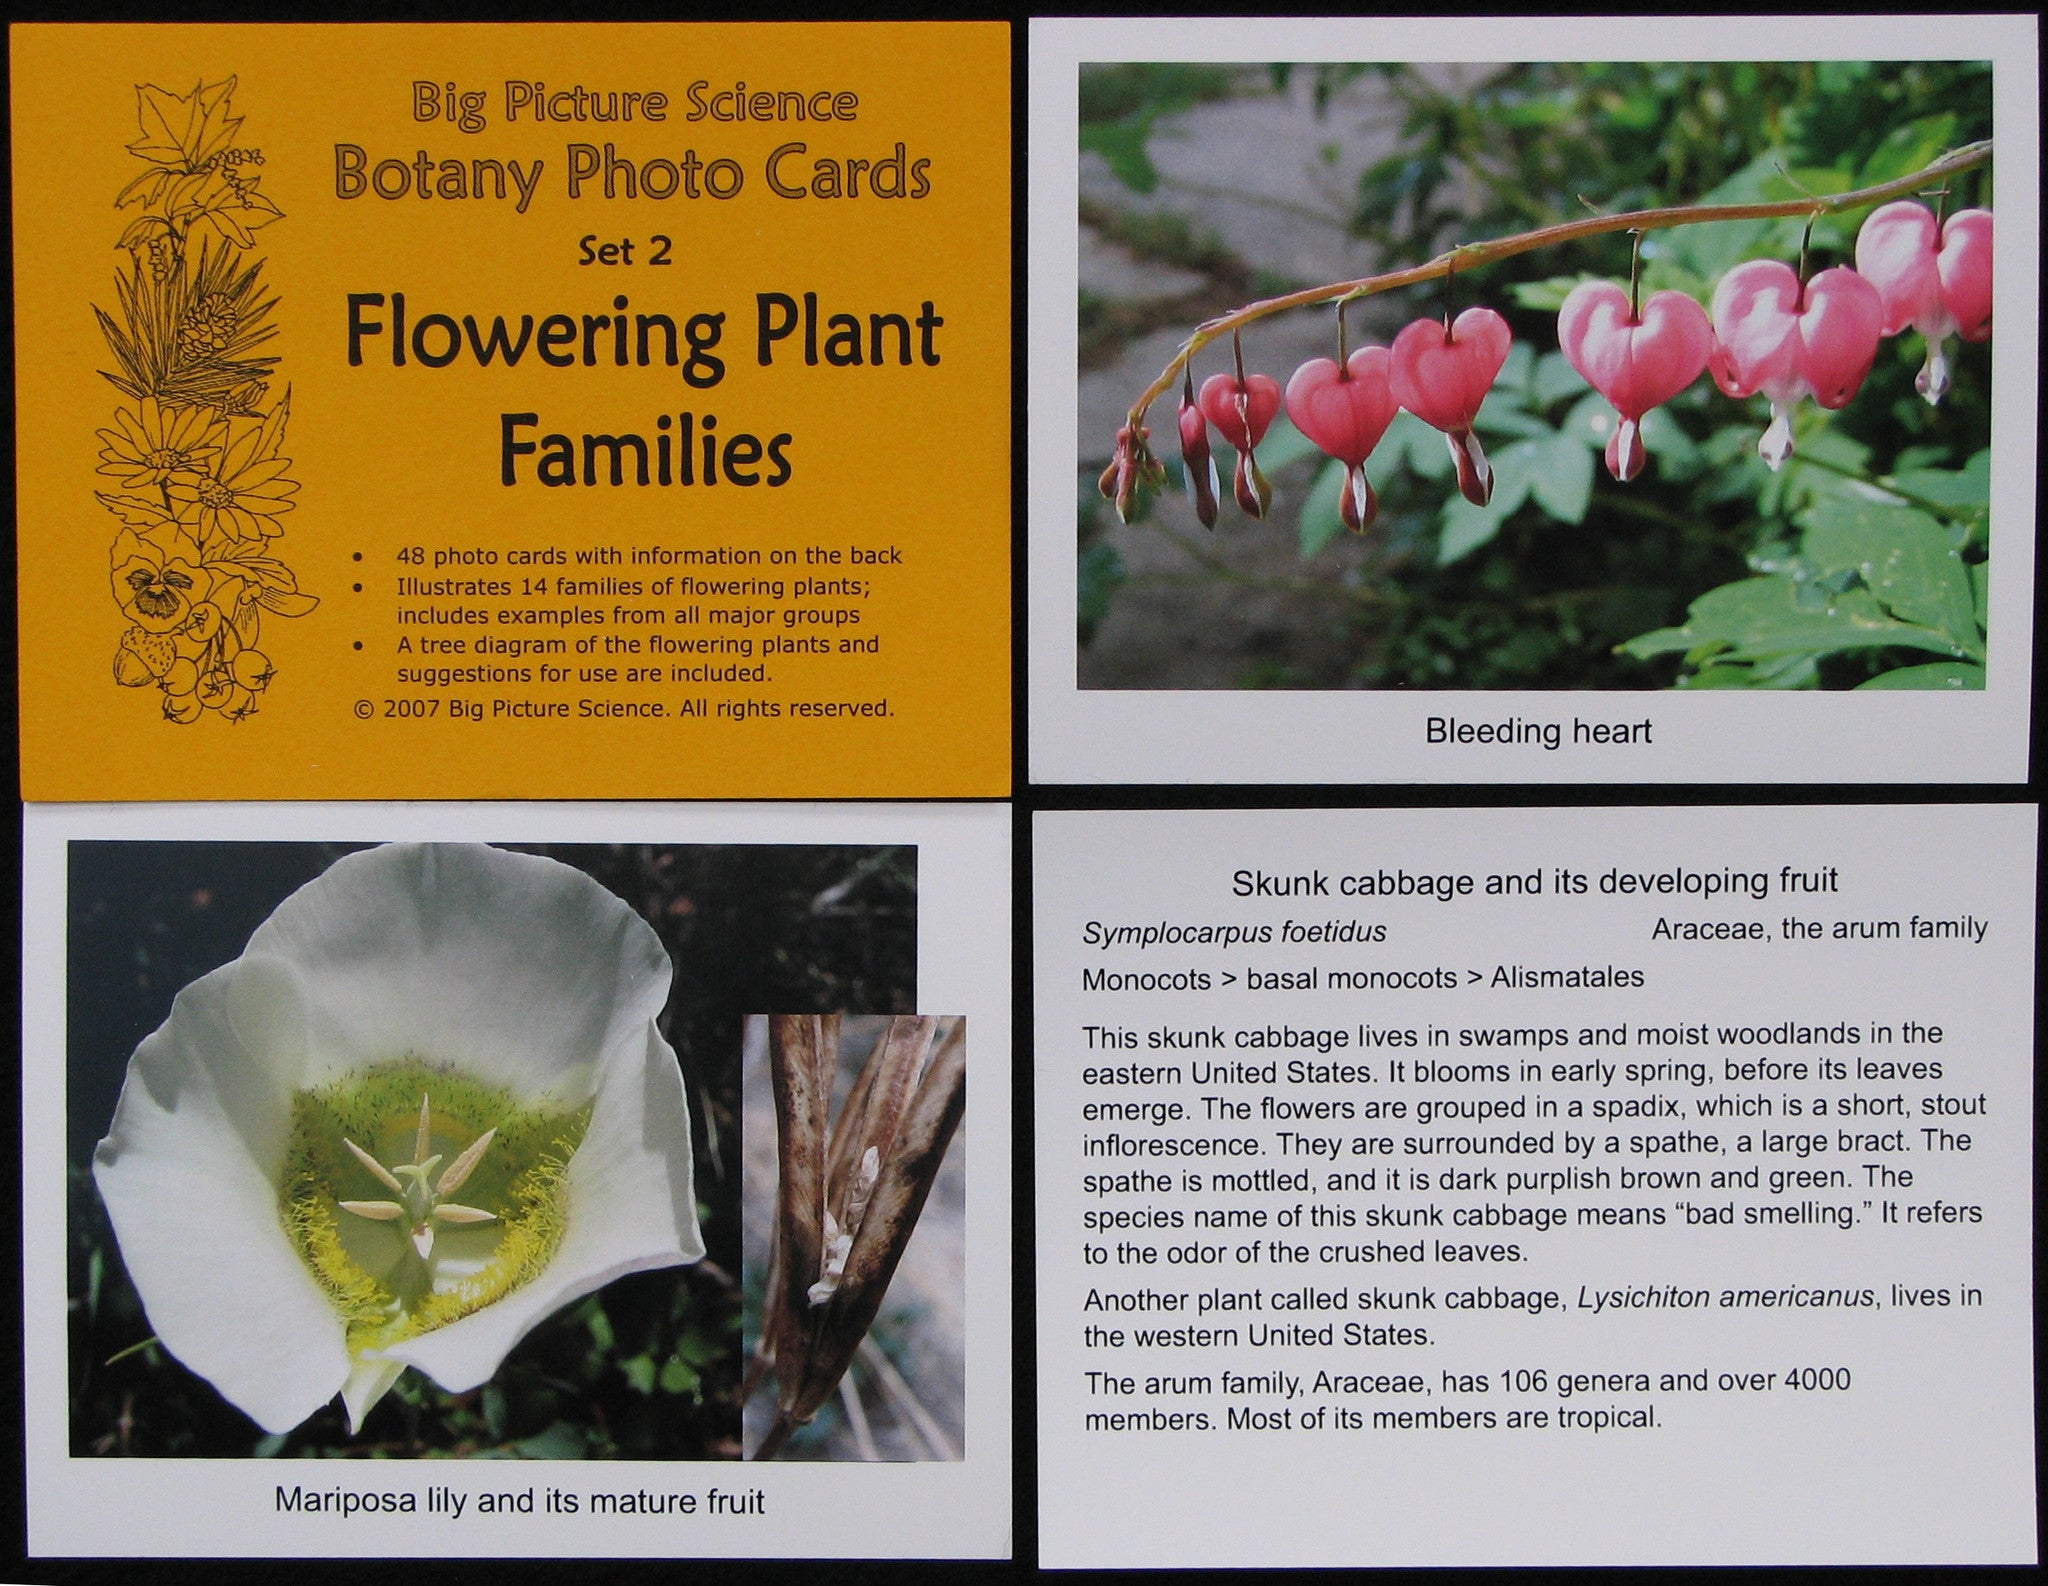 Flowering Plant Families photocard set from Big Picture Science